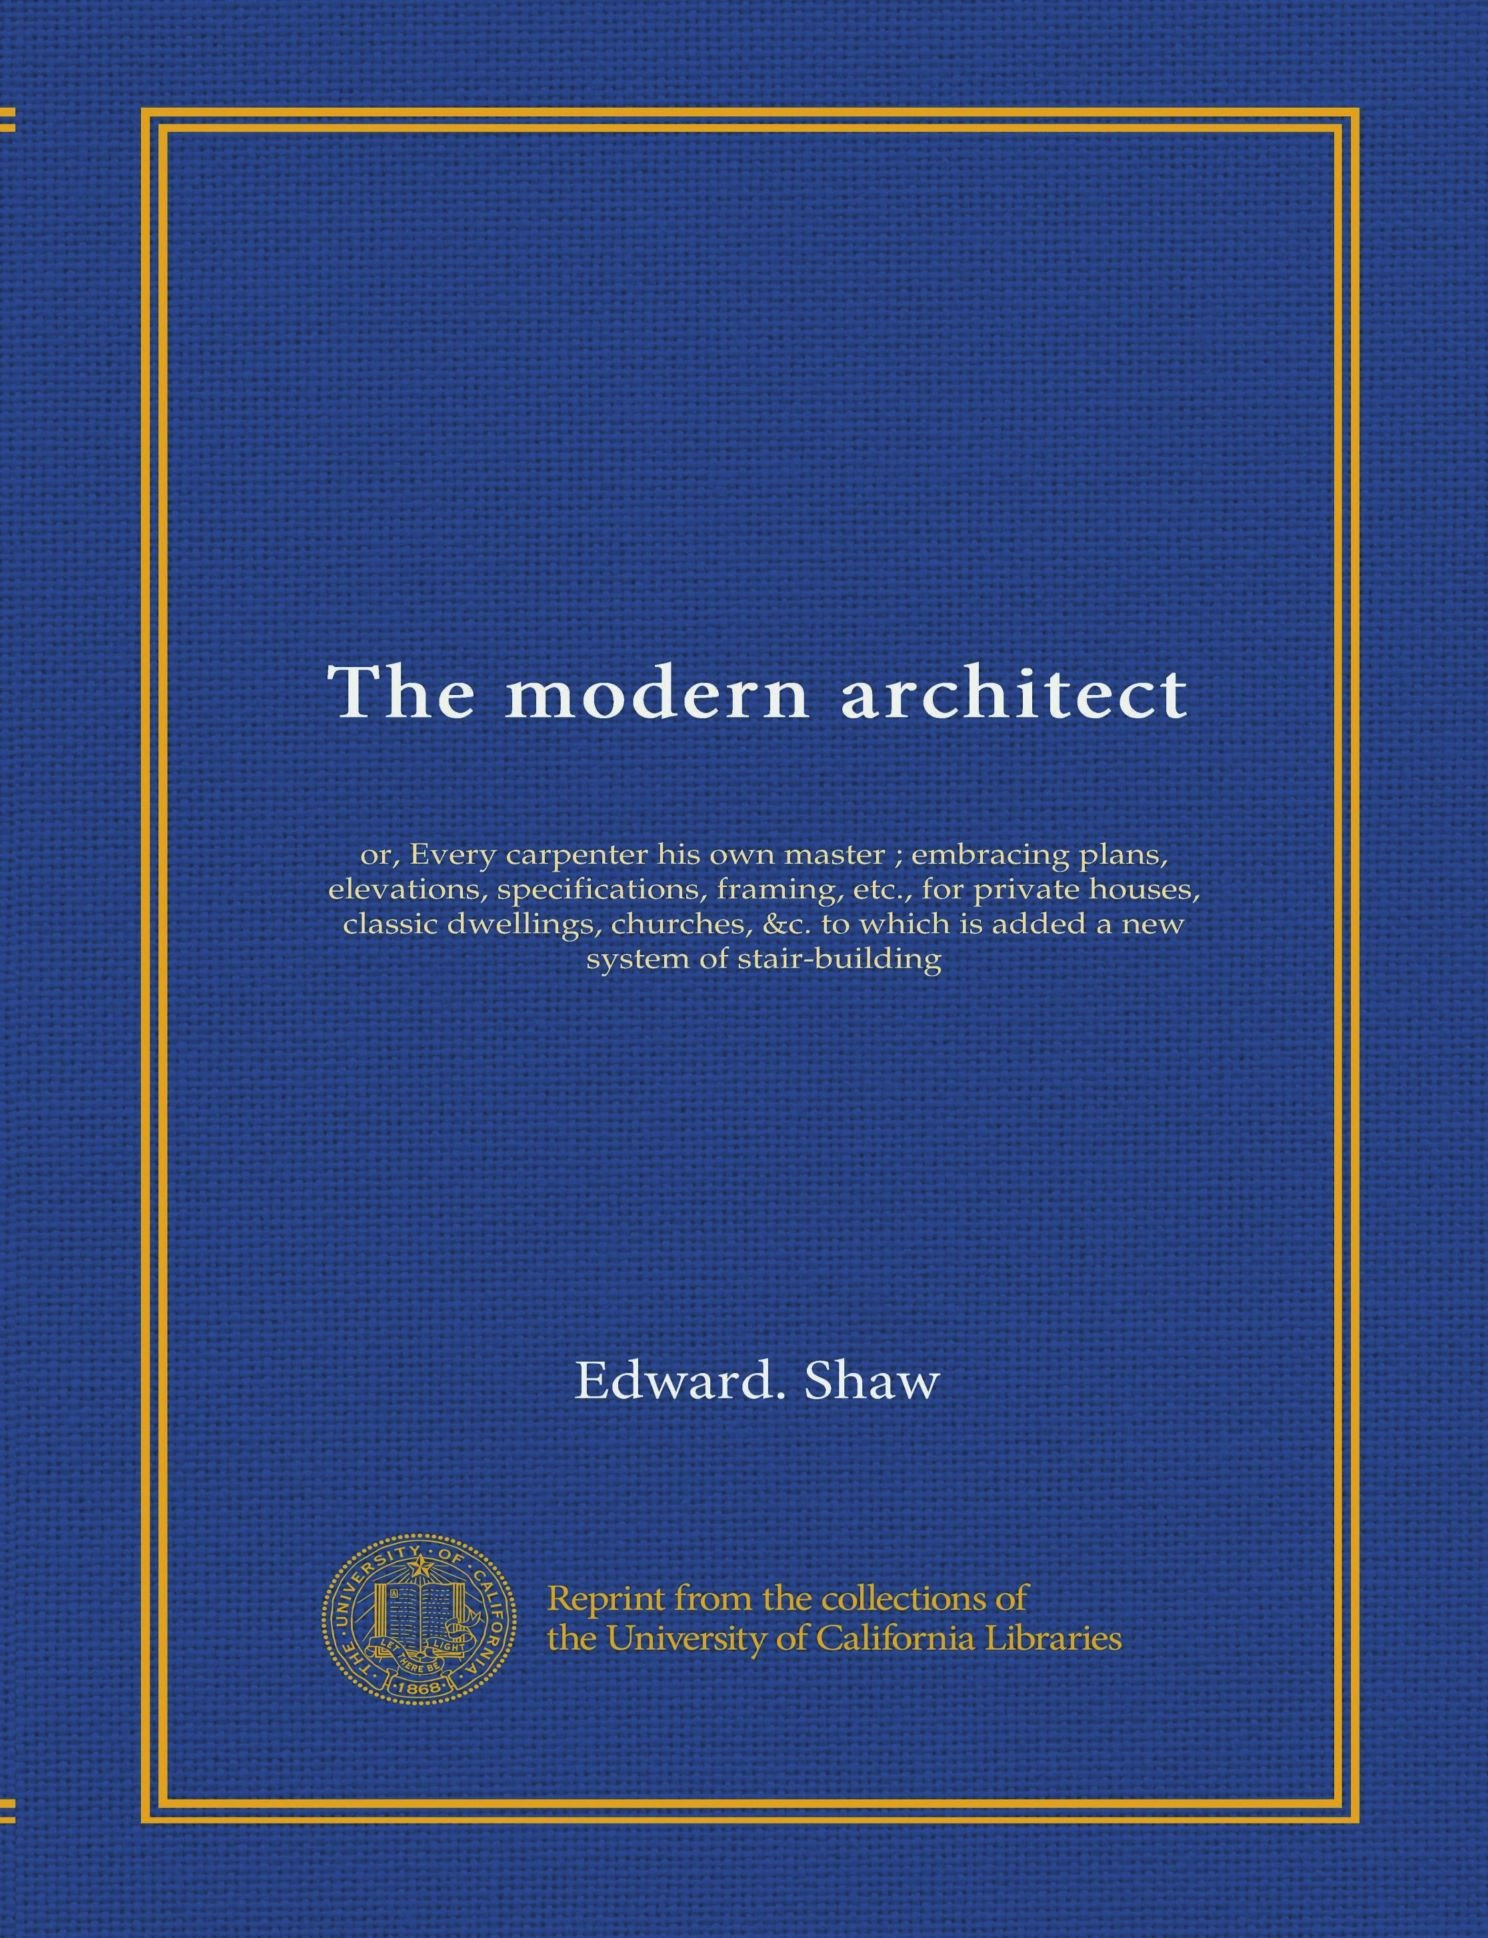 The modern architect: or, Every carpenter his own master ; embracing plans, elevations, specifications, framing, etc., for private houses, classic ... which is added a new system of stair-building